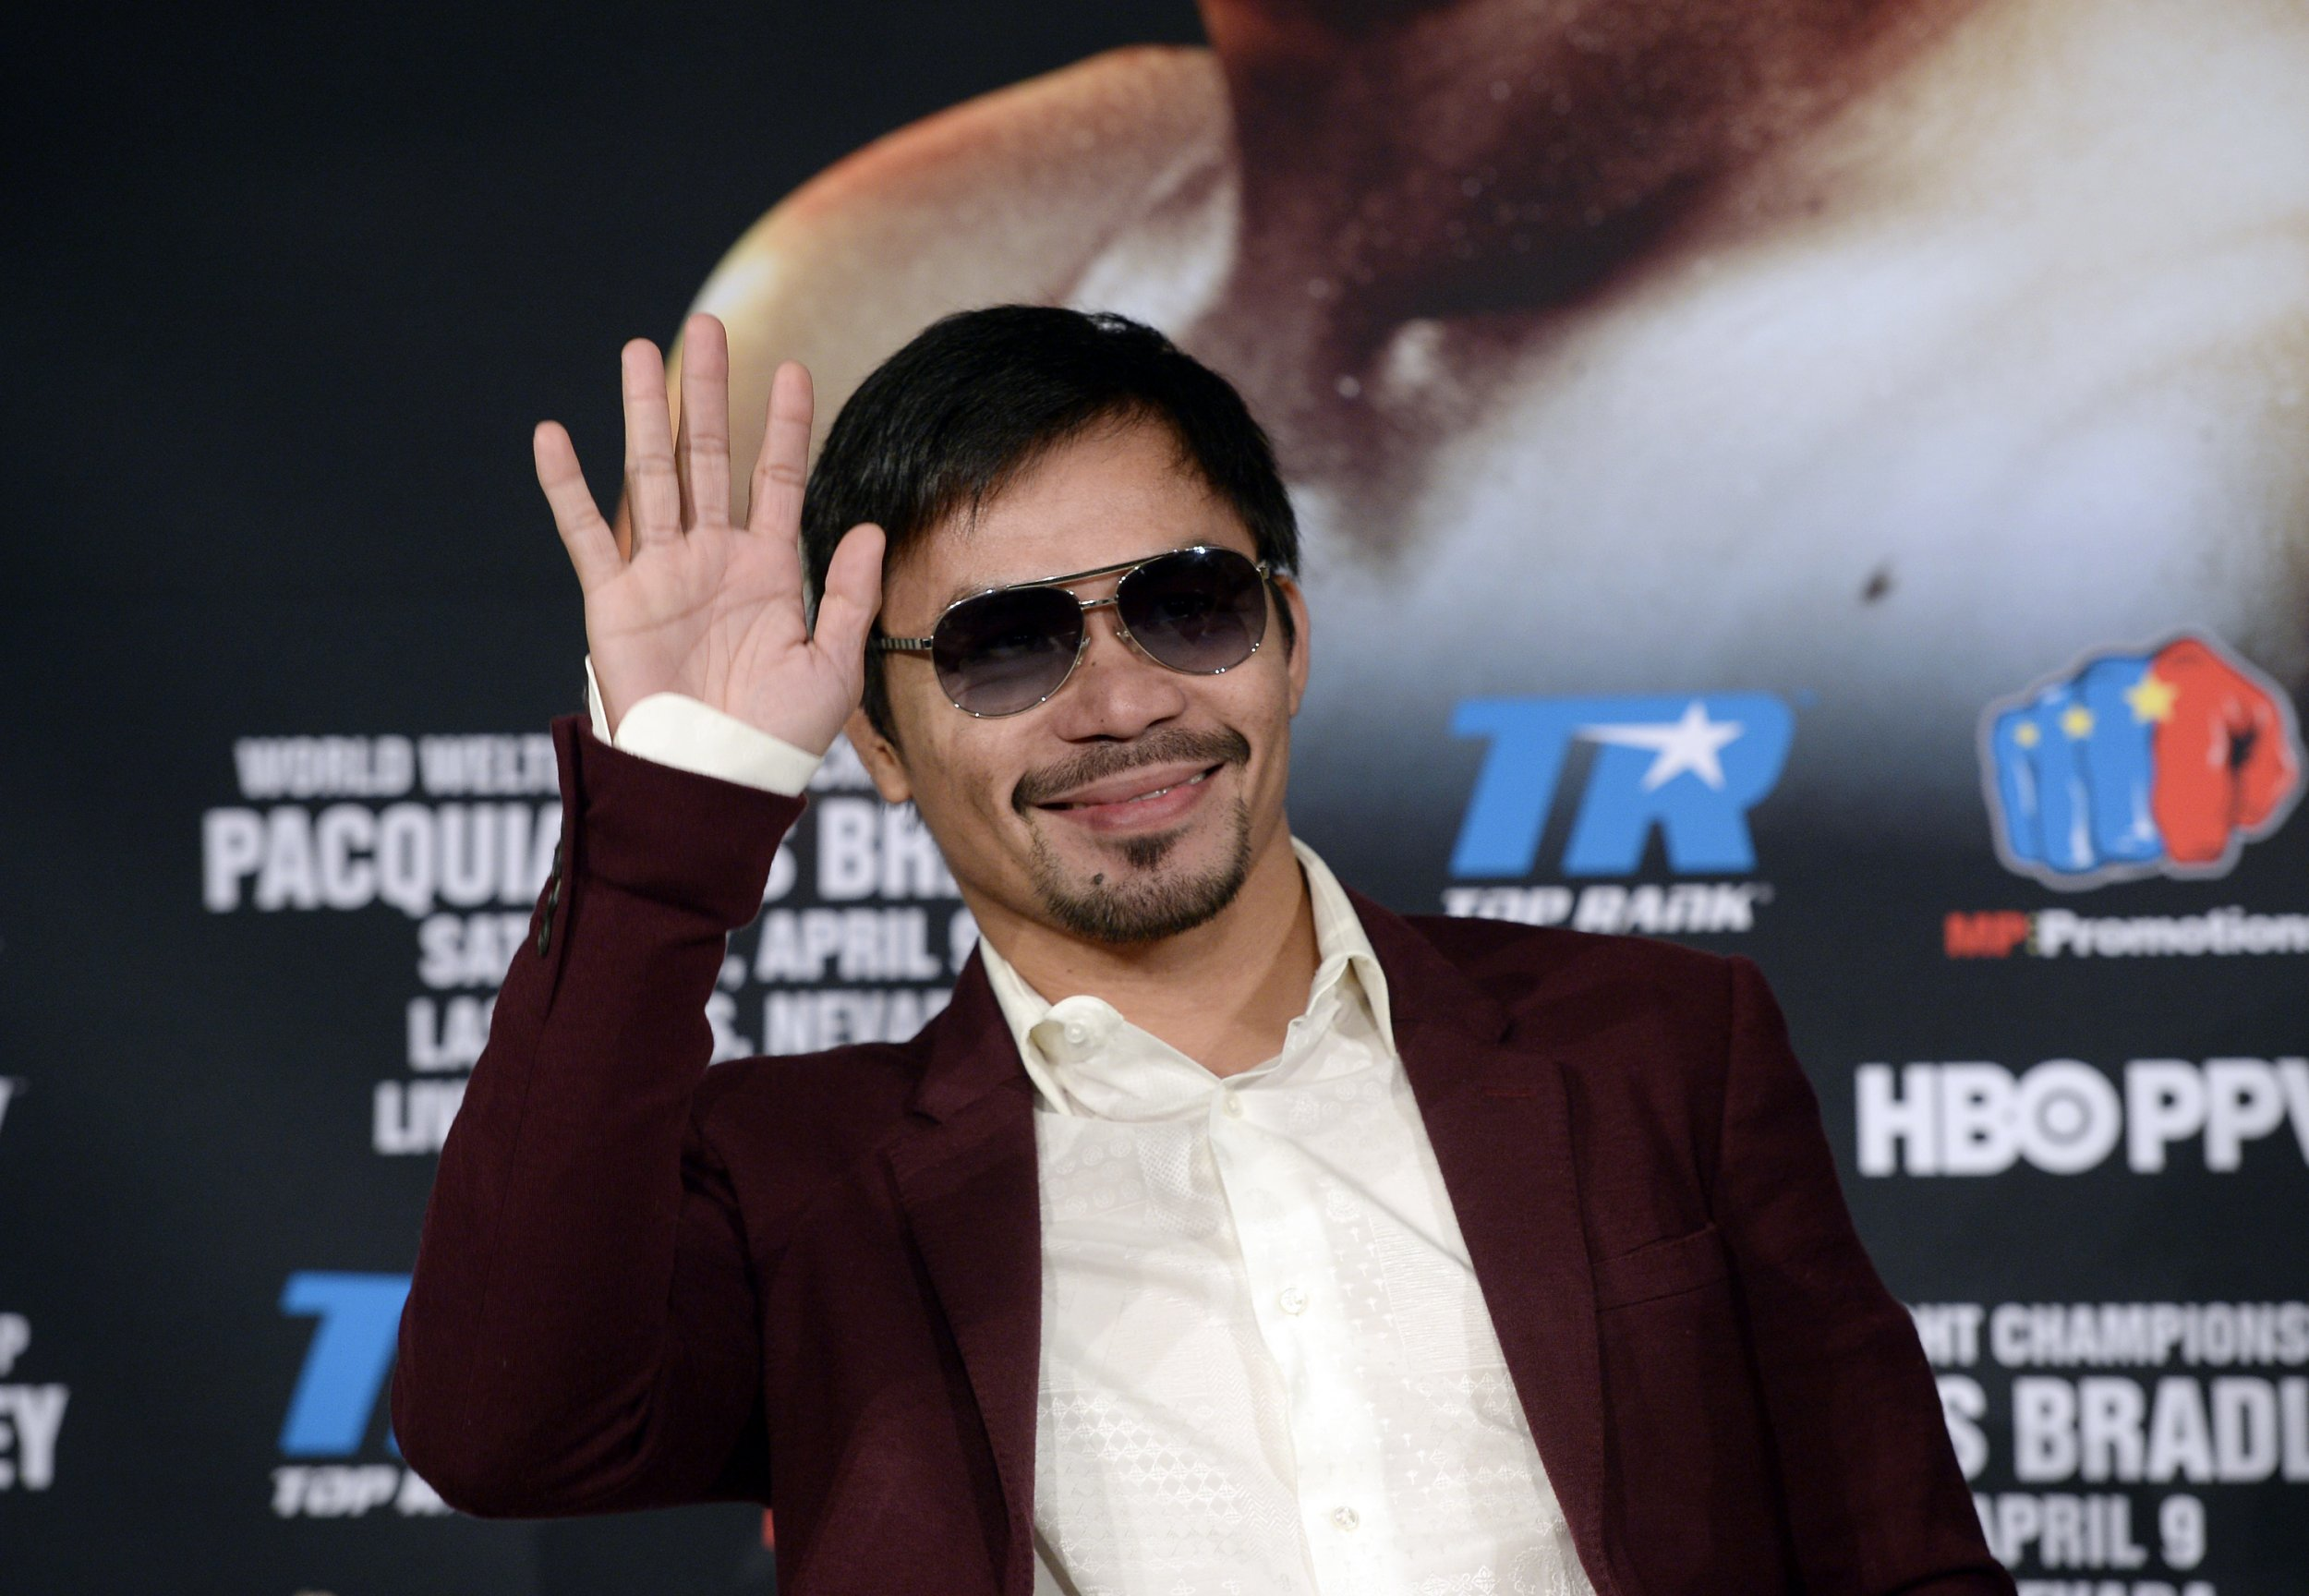 Manny Pacquiao is promoting his upcoming fight with Timothy Bradley Jr.